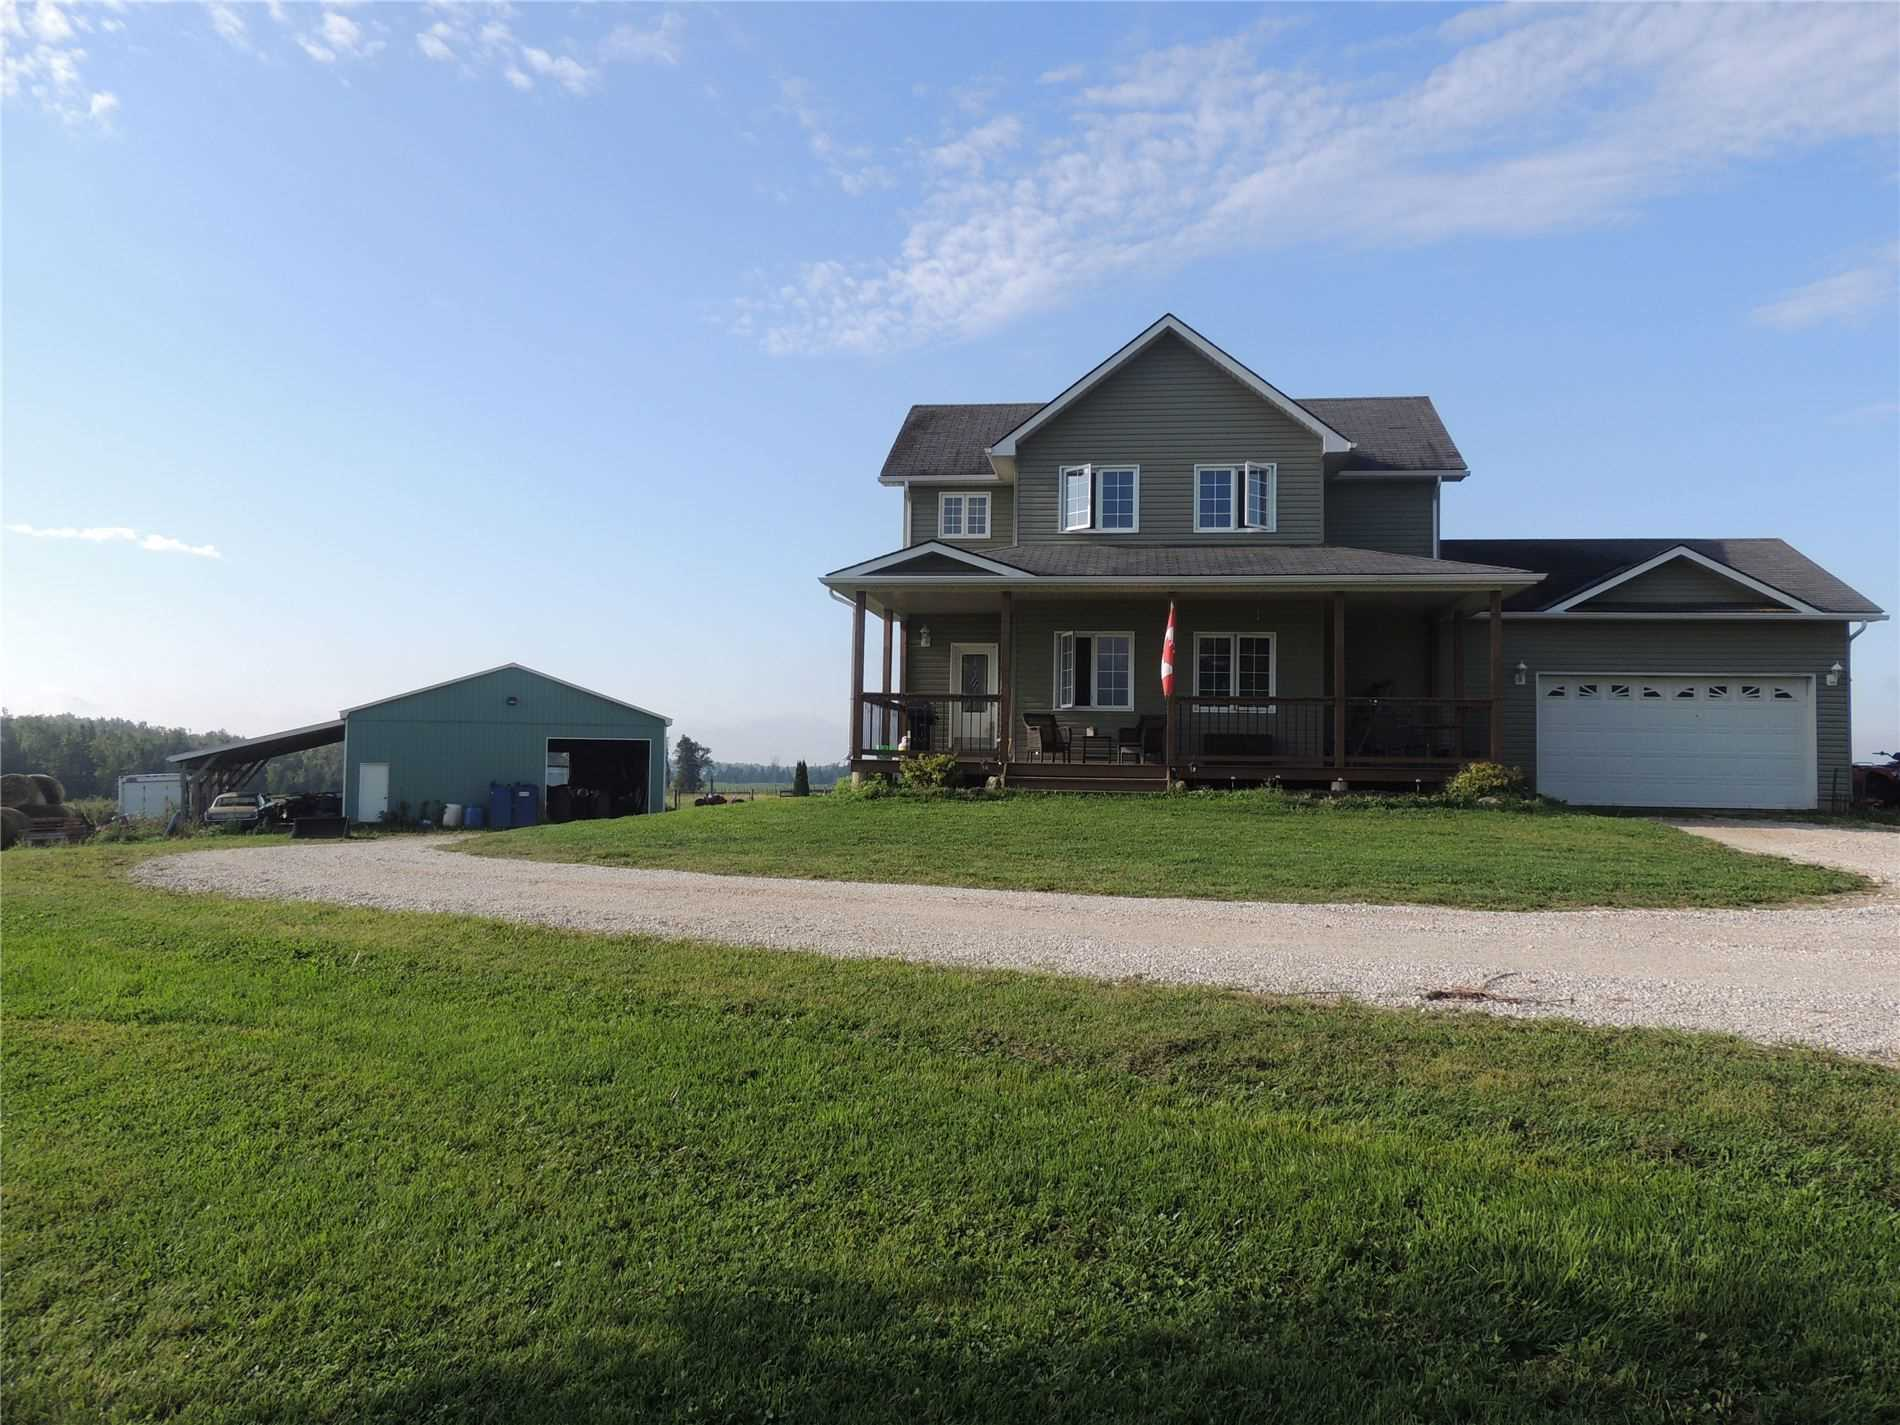 pictures of house for sale MLS: X4896038 located at 308042 Centre A Line, Grey Highlands N0C1L0